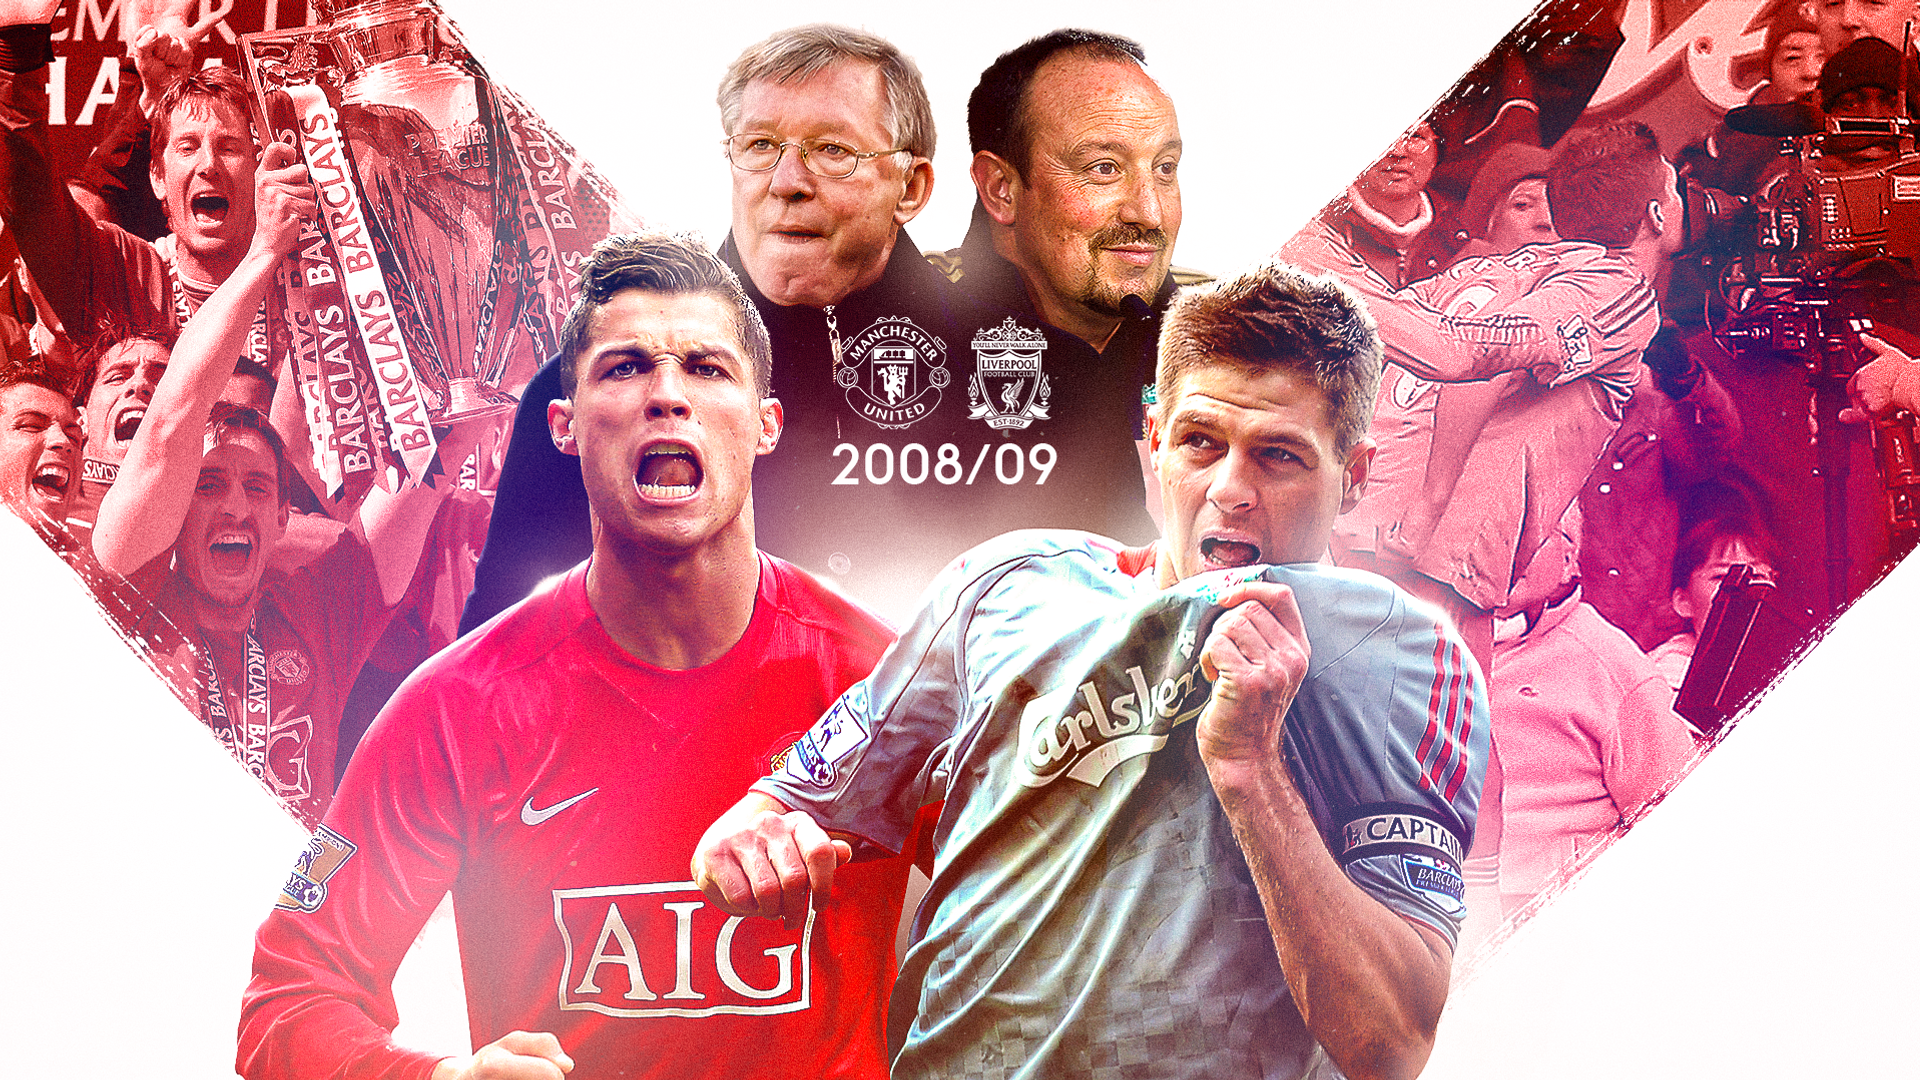 Liverpool-Man Utd's last title race: Fergie, 'facts' and more